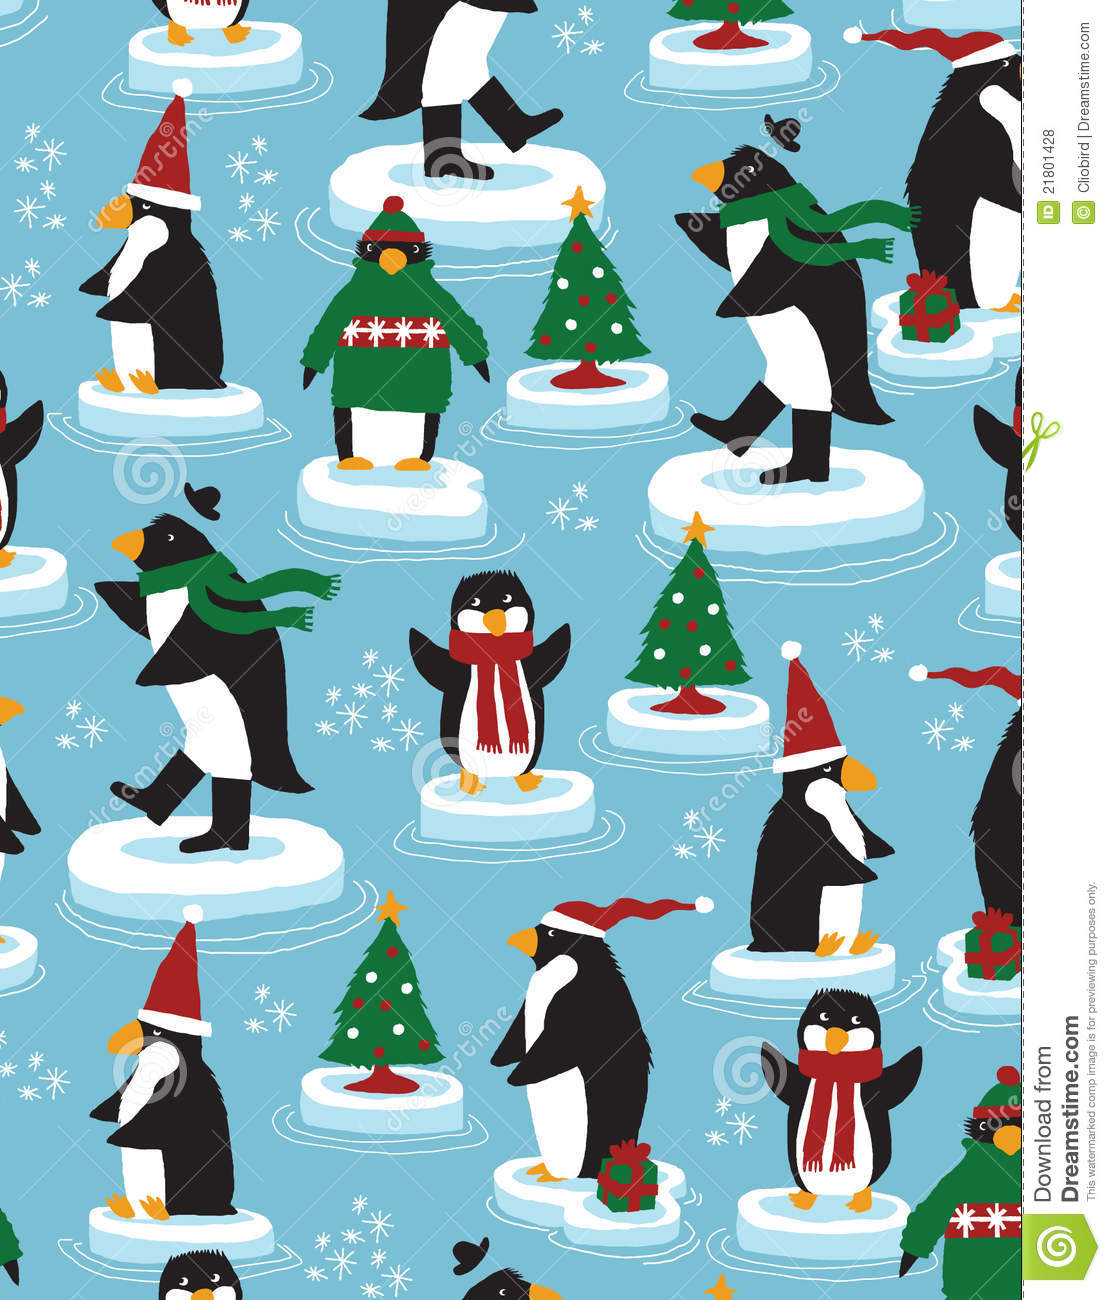 pinguin weihnachten my blog. Black Bedroom Furniture Sets. Home Design Ideas